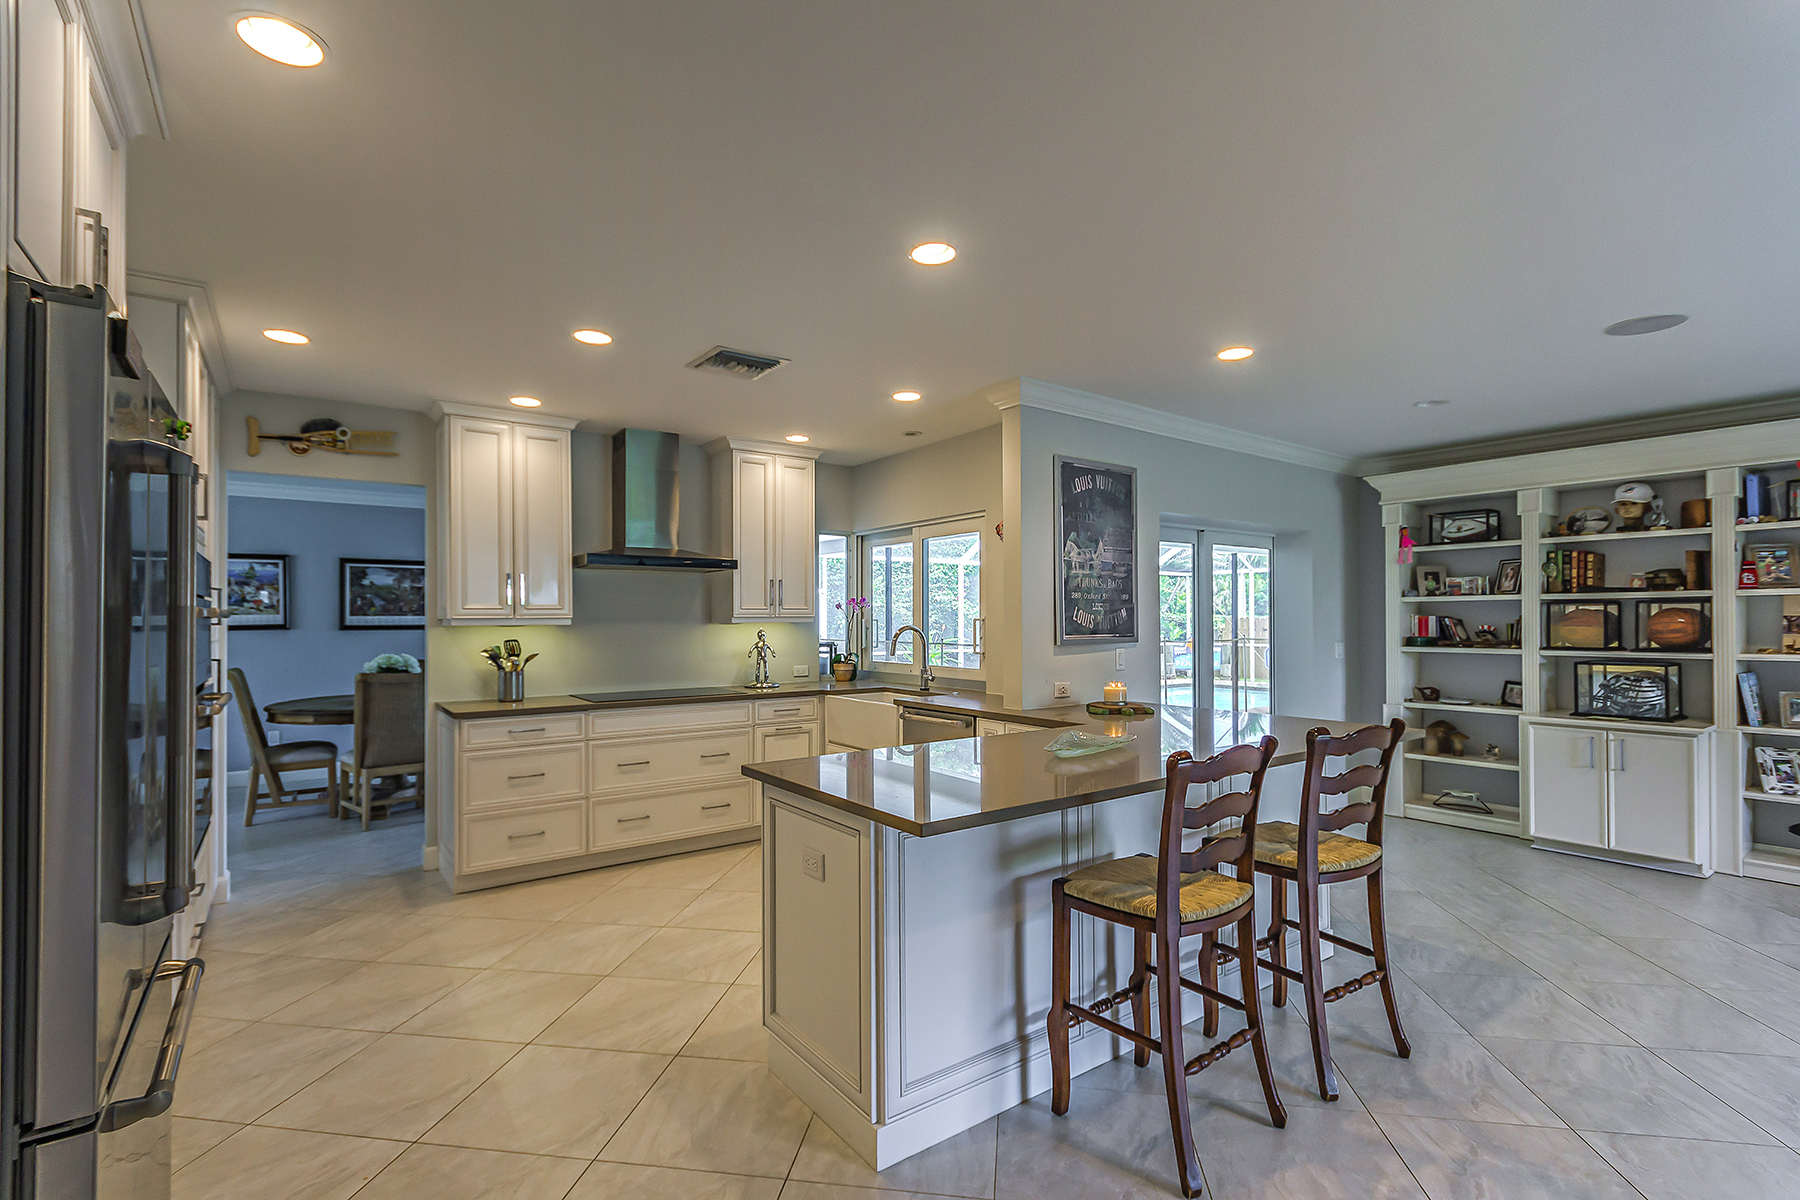 Single Family Home for Sale at NAPLES TERRACE - THURNER 2742 14th St N Naples, Florida, 34103 United States